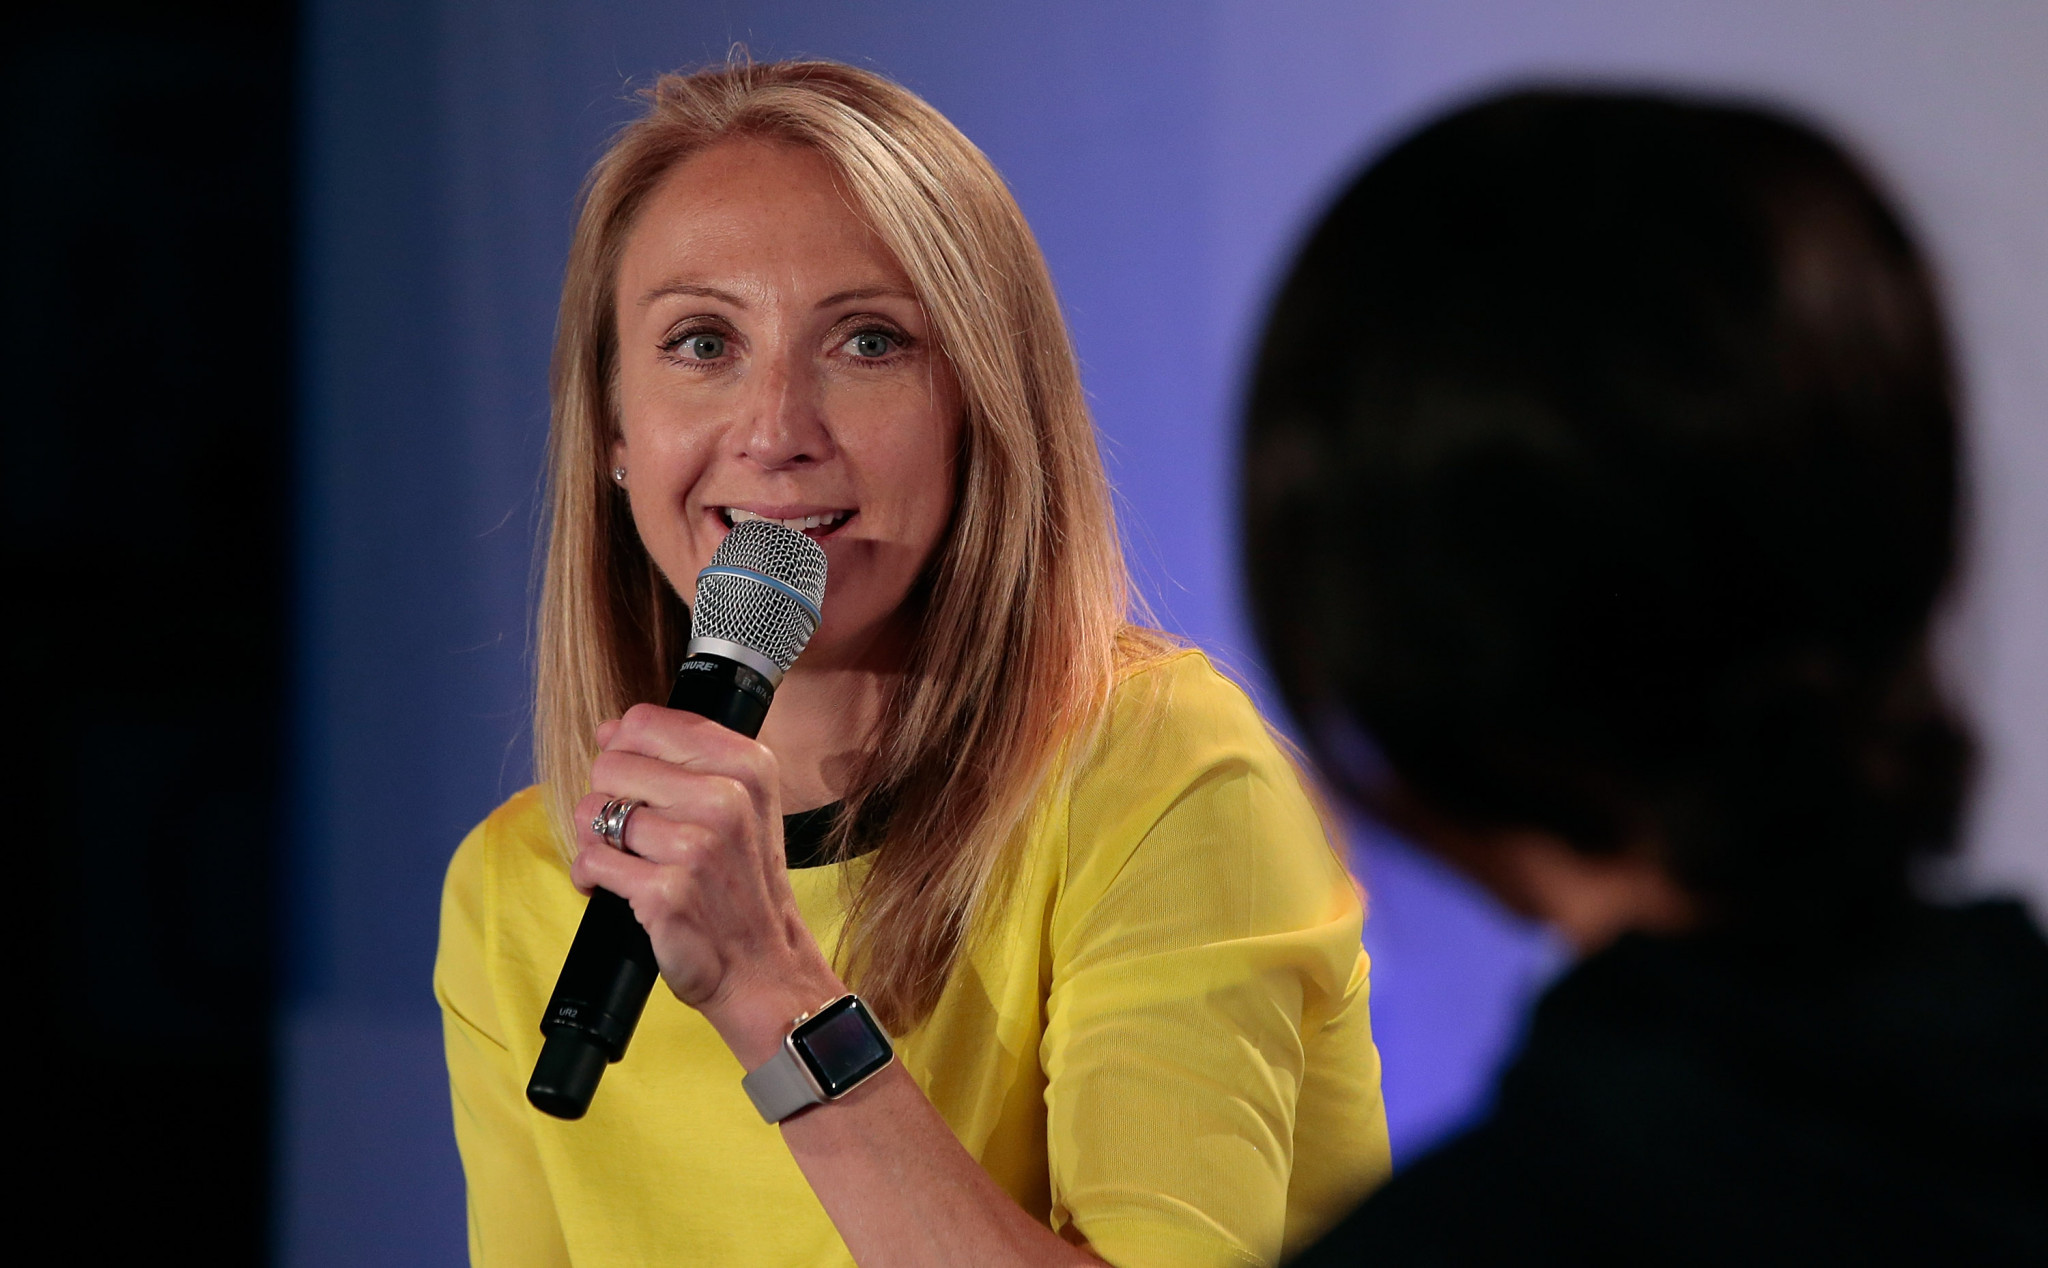 Paula Radcliffe has criticised the IOC for their response to the Russian doping scandal ©Getty Images